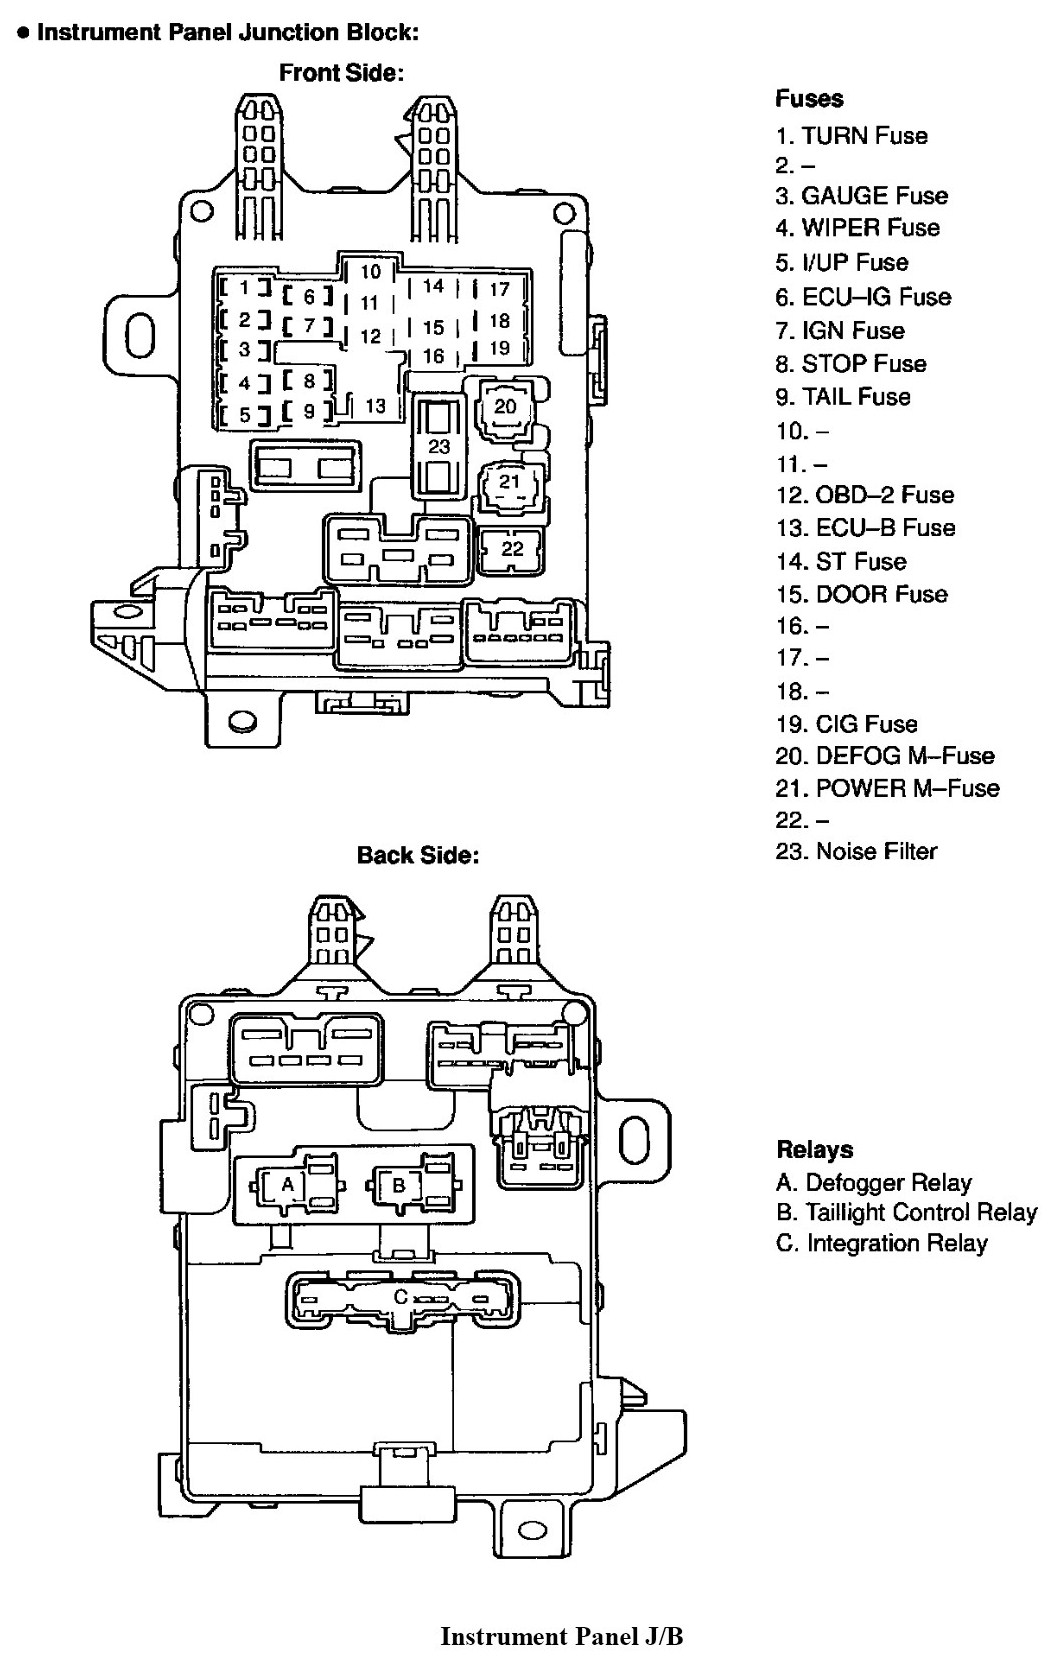 hight resolution of 2000 toyota corolla fuse box diagram simple wiring schema toyota camry fuses 2000 corolla fuse box